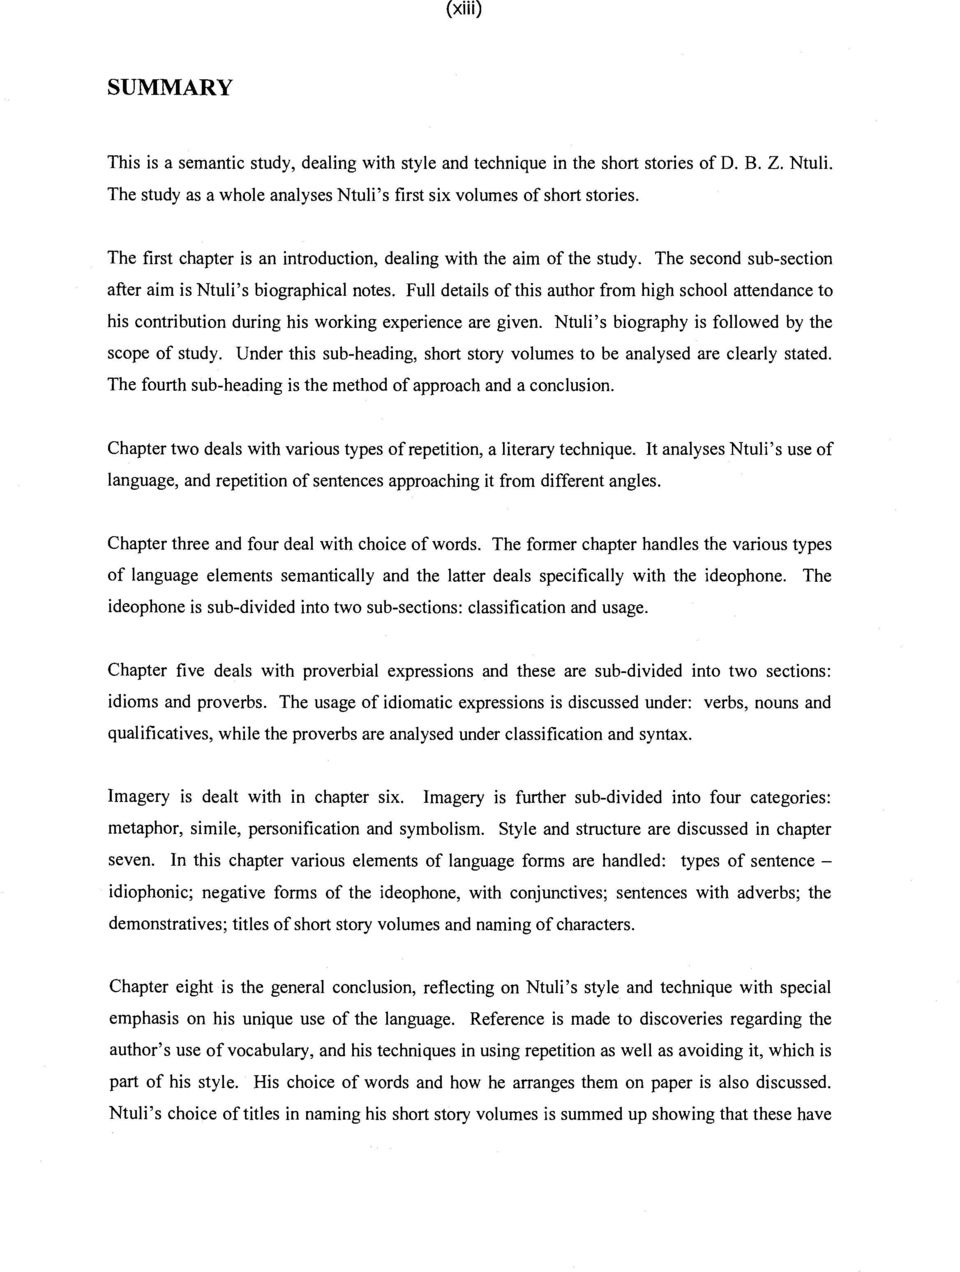 Stylistic Techniques In The Short Stories Of Dbz Ntuli Pdf